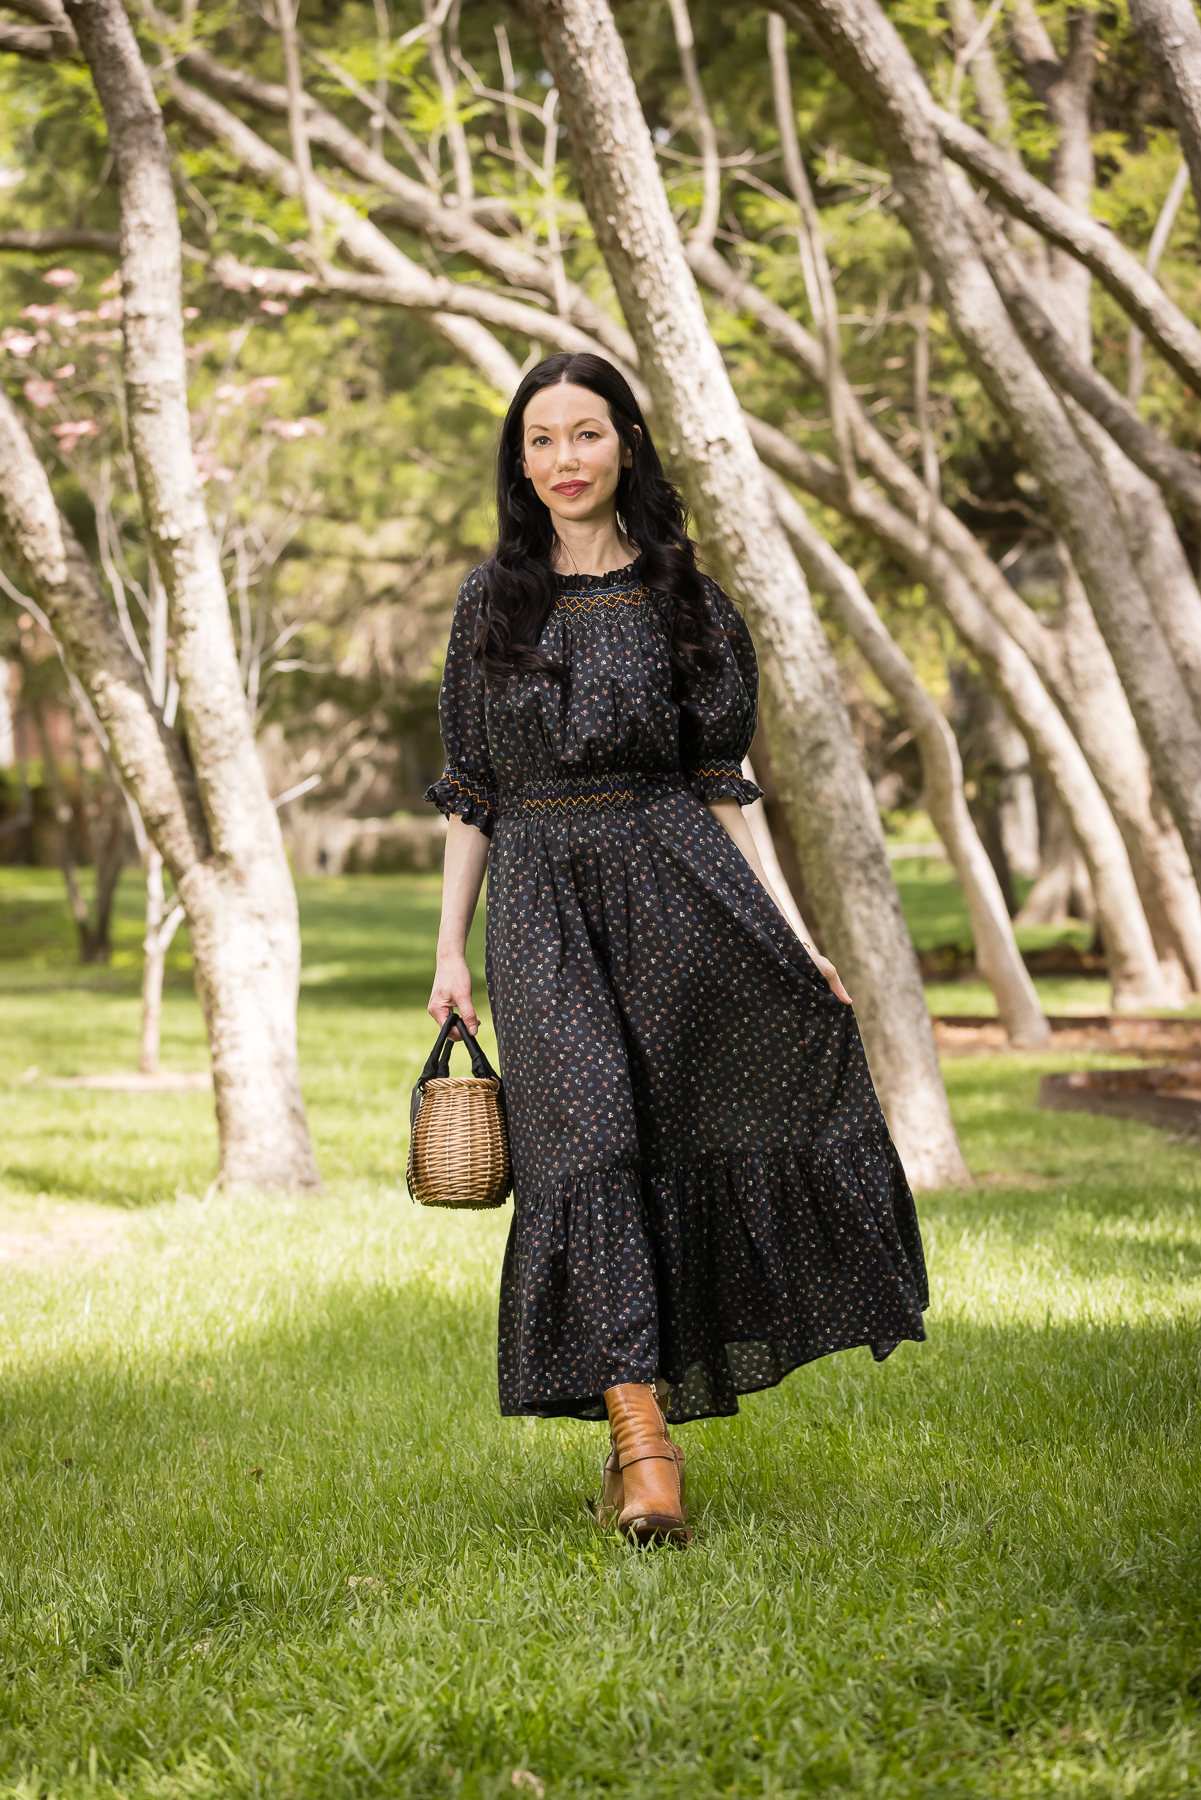 Black Floral Prairie Dress, Straw bag, distressed ankle boots | Prairie Dress by popular Dallas fashion blog, Pretty Little Shoppers: image of a woman walking outside on some grass under some trees and wearing a black Down prairie dress, tan boots, and holding a woven handbag.